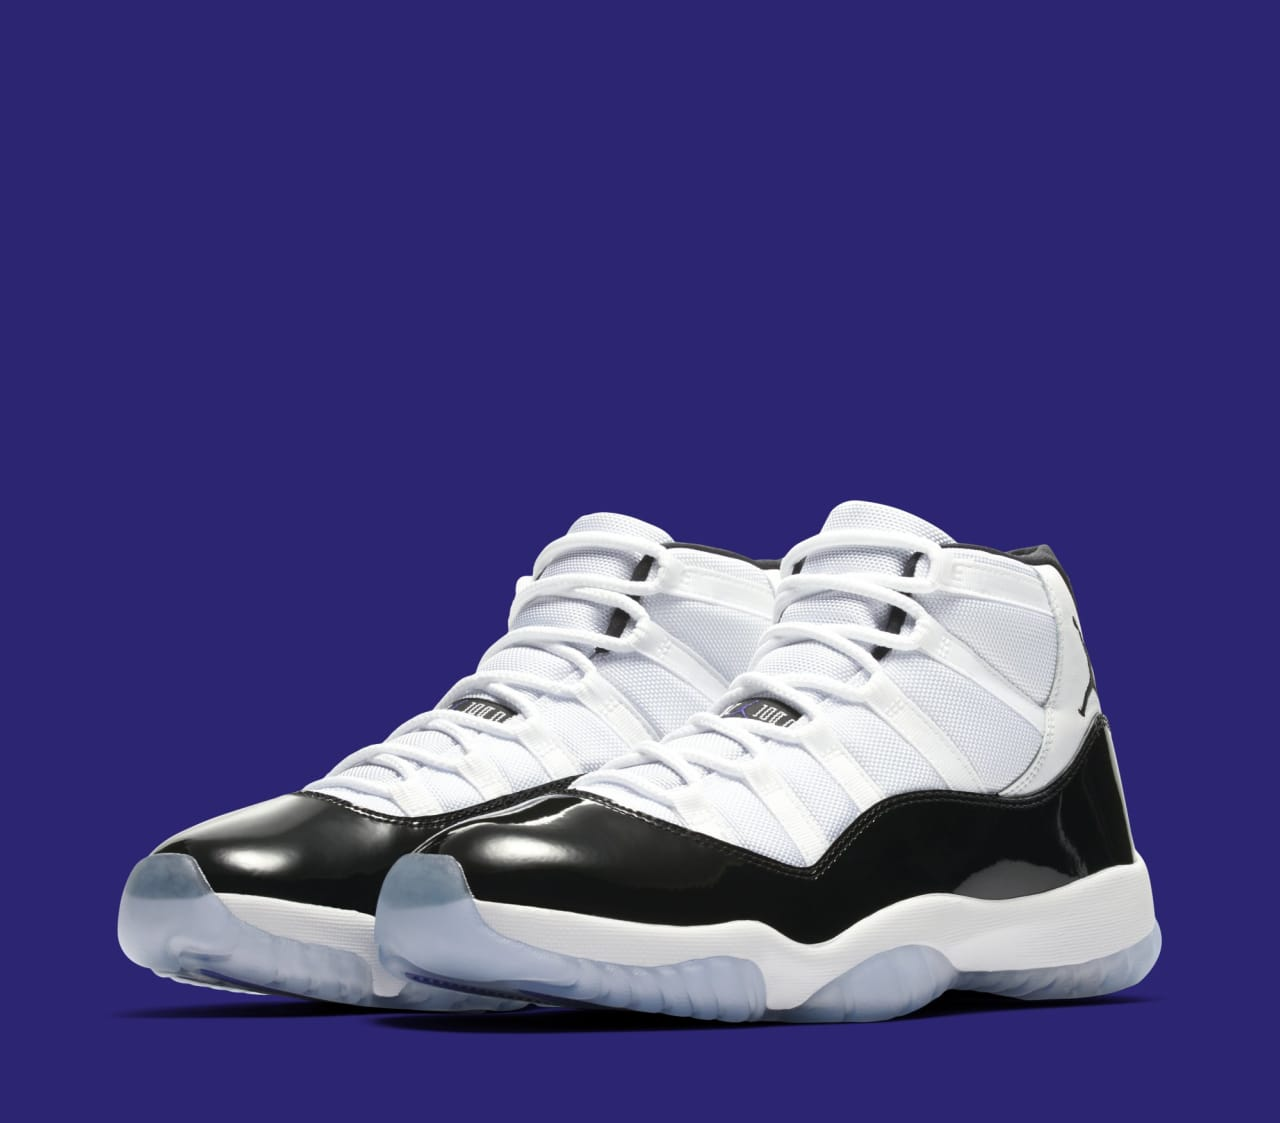 1ab5681bc75 Concord' Air Jordan 11 Returning In 2018 378037-100 | Sole Collector